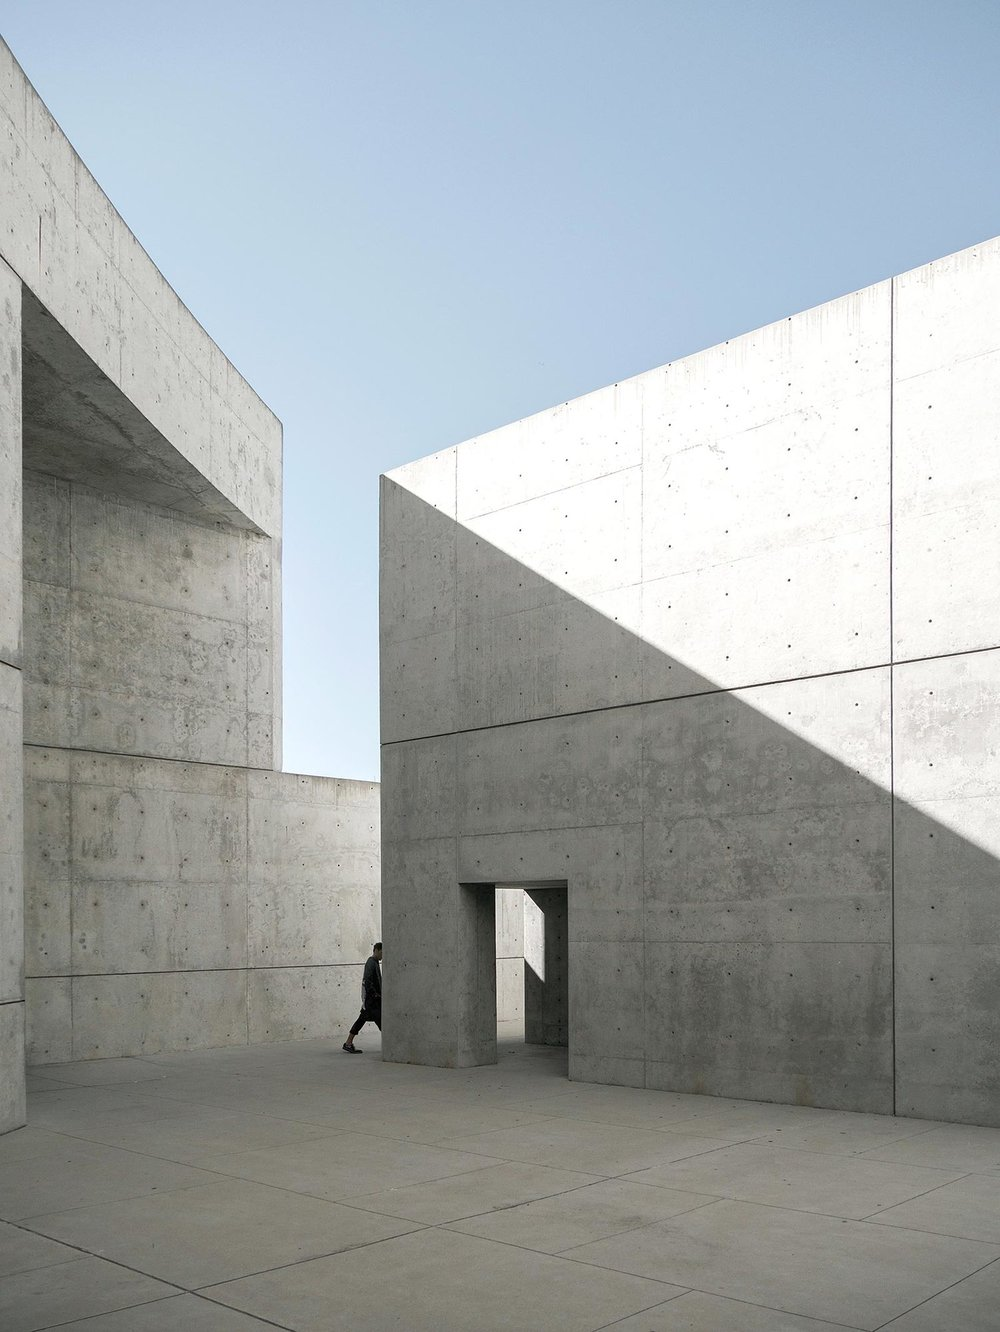 Geometric-Encounters-architecture-concrete-exterior-photography-cool-clean-modern-by-Thismintymoment-Mindsparkle-Mag-1.jpg